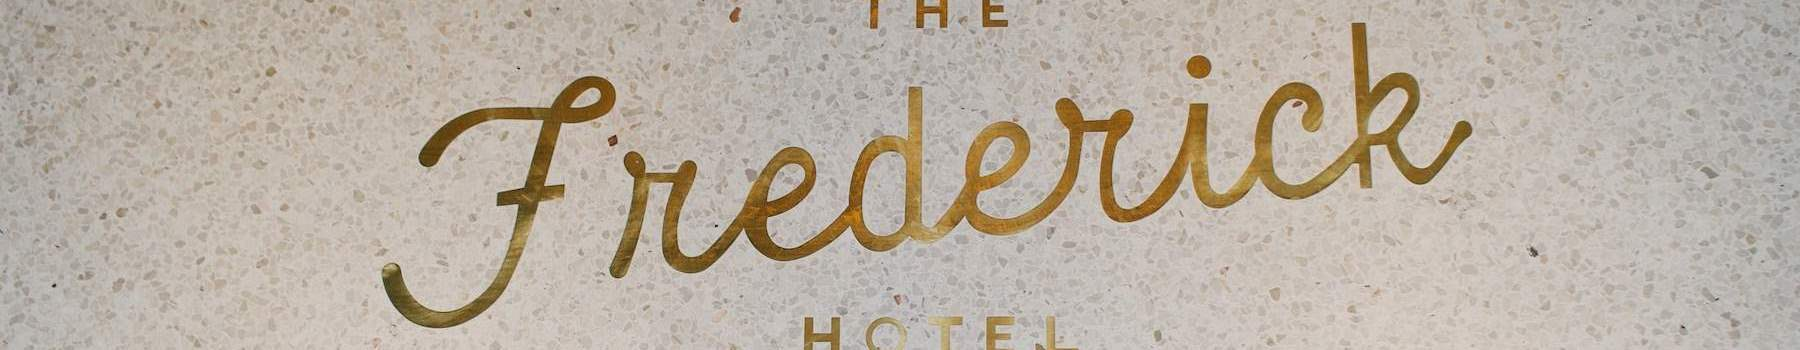 Offers at Frederick hotel newyork